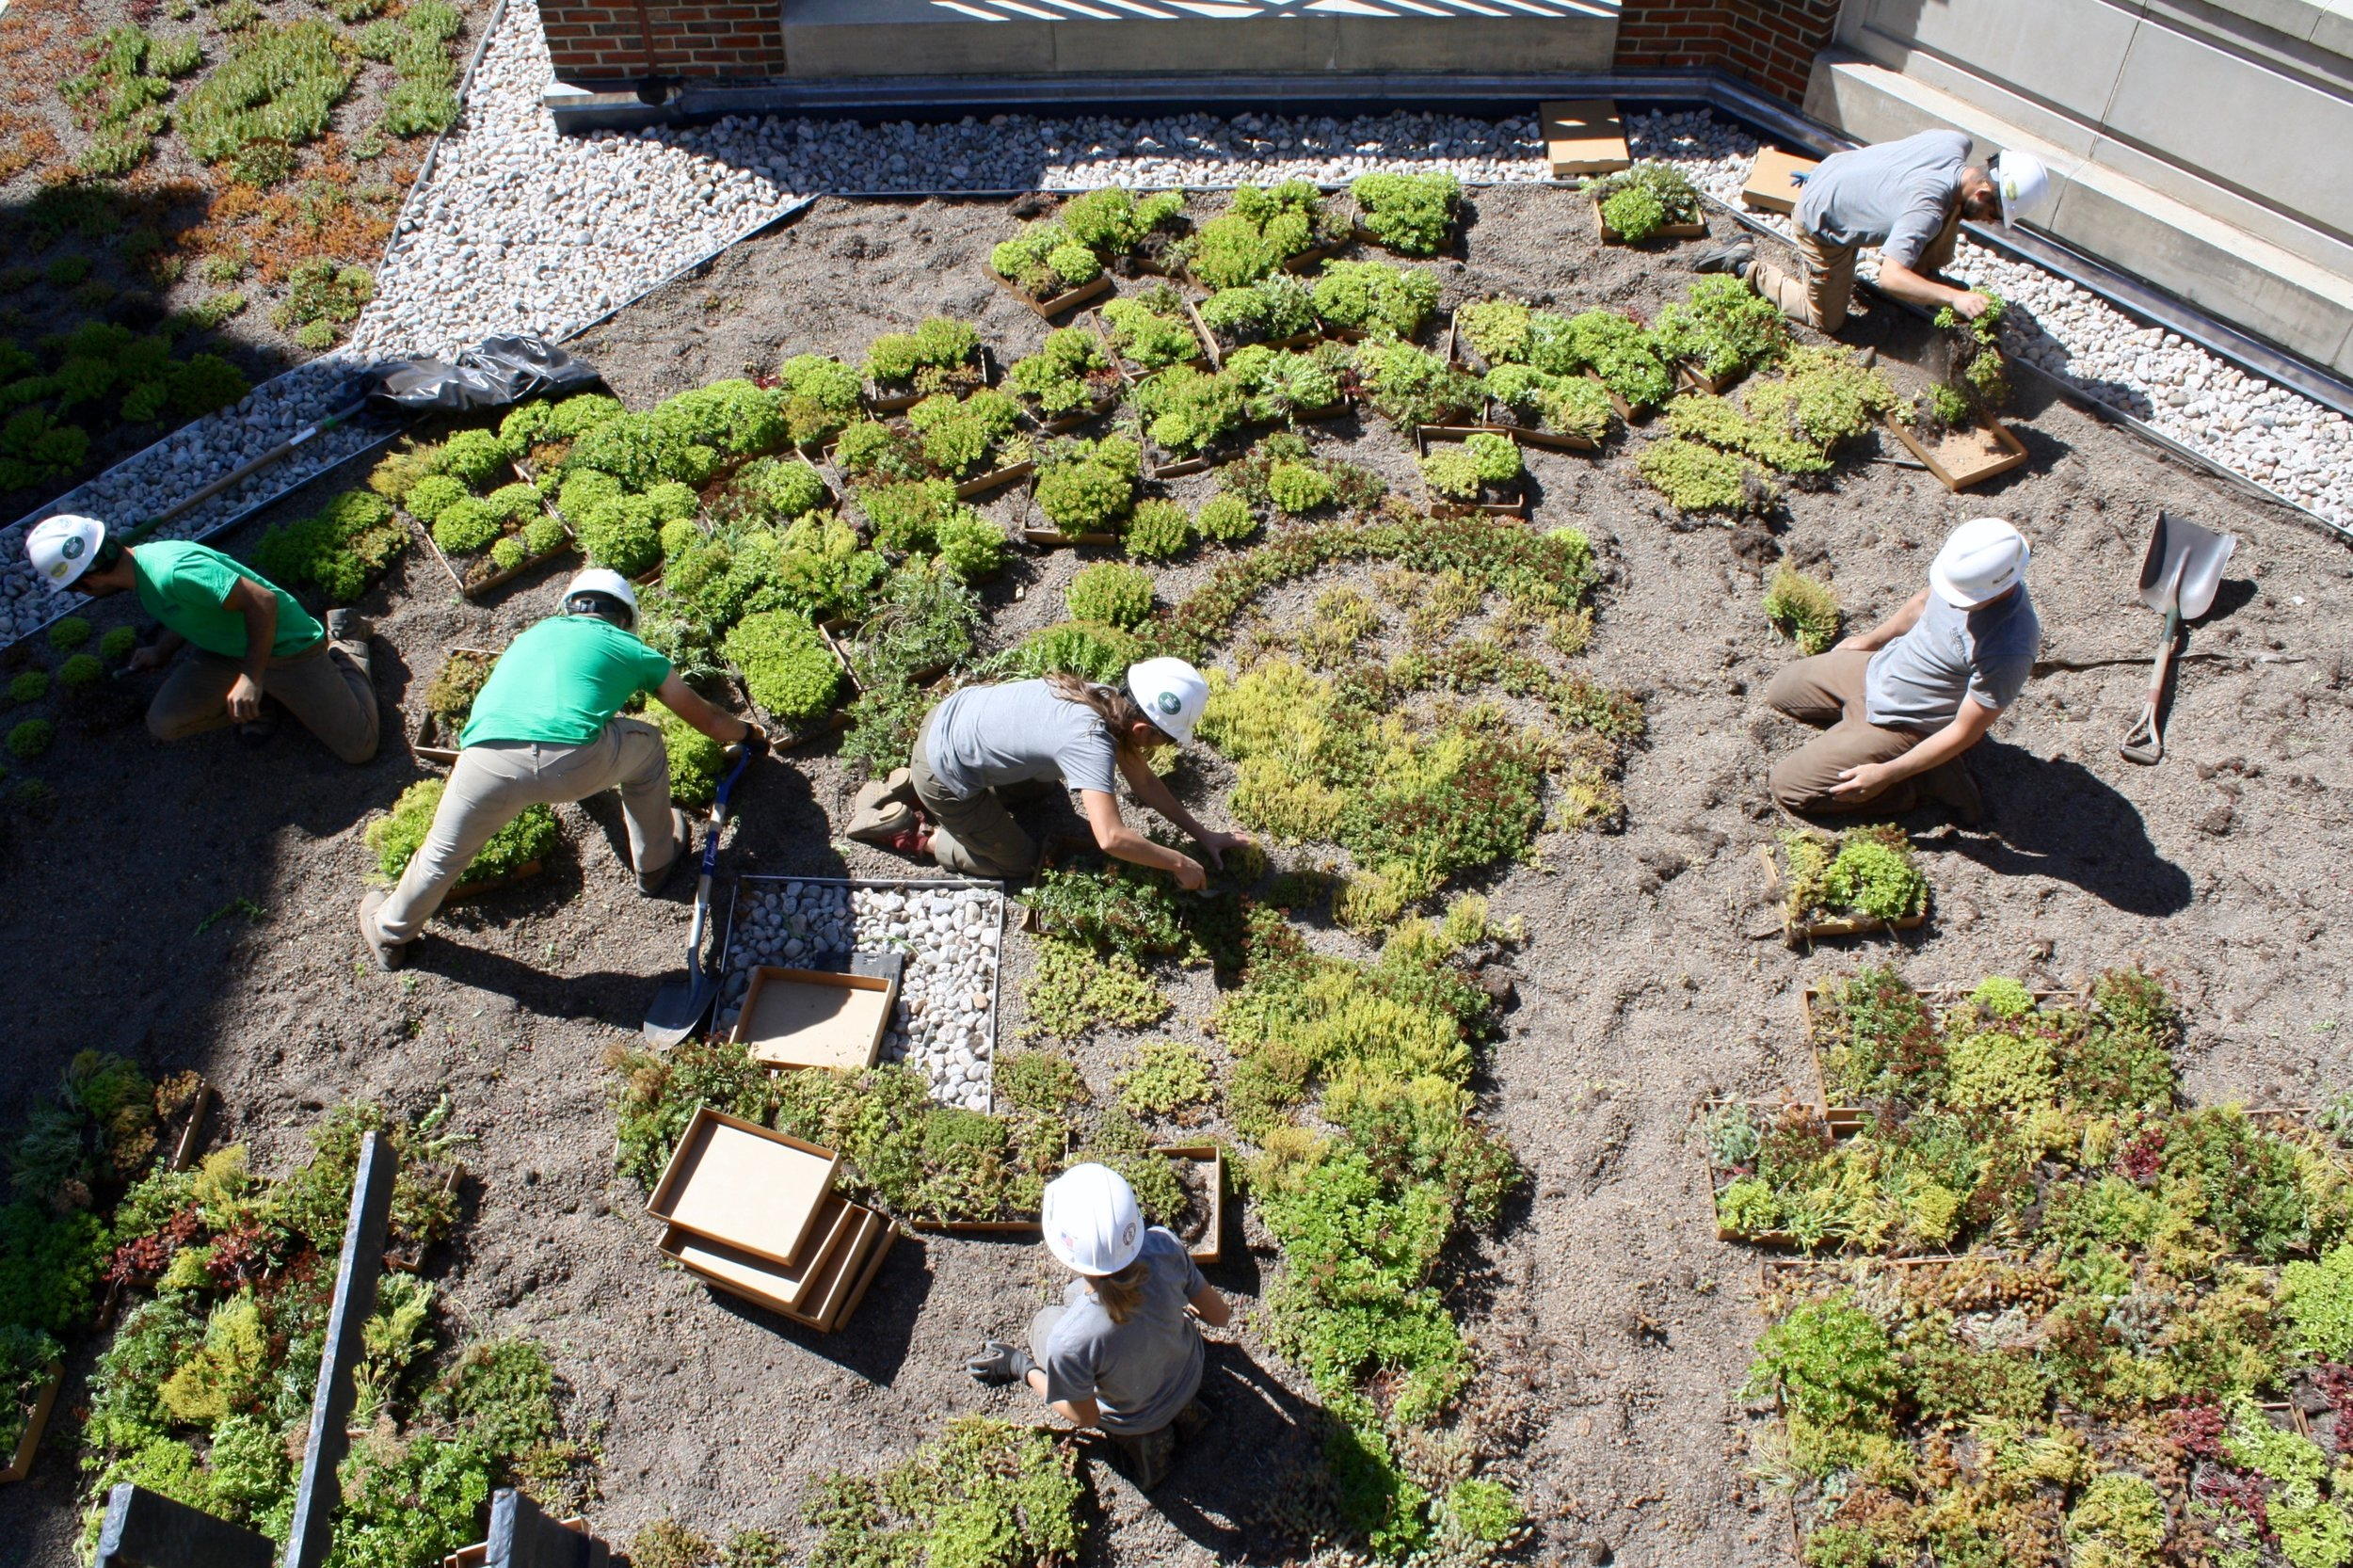 recover-green-roofs-harvar-business-school-rooftop-garden-2016-24.jpg